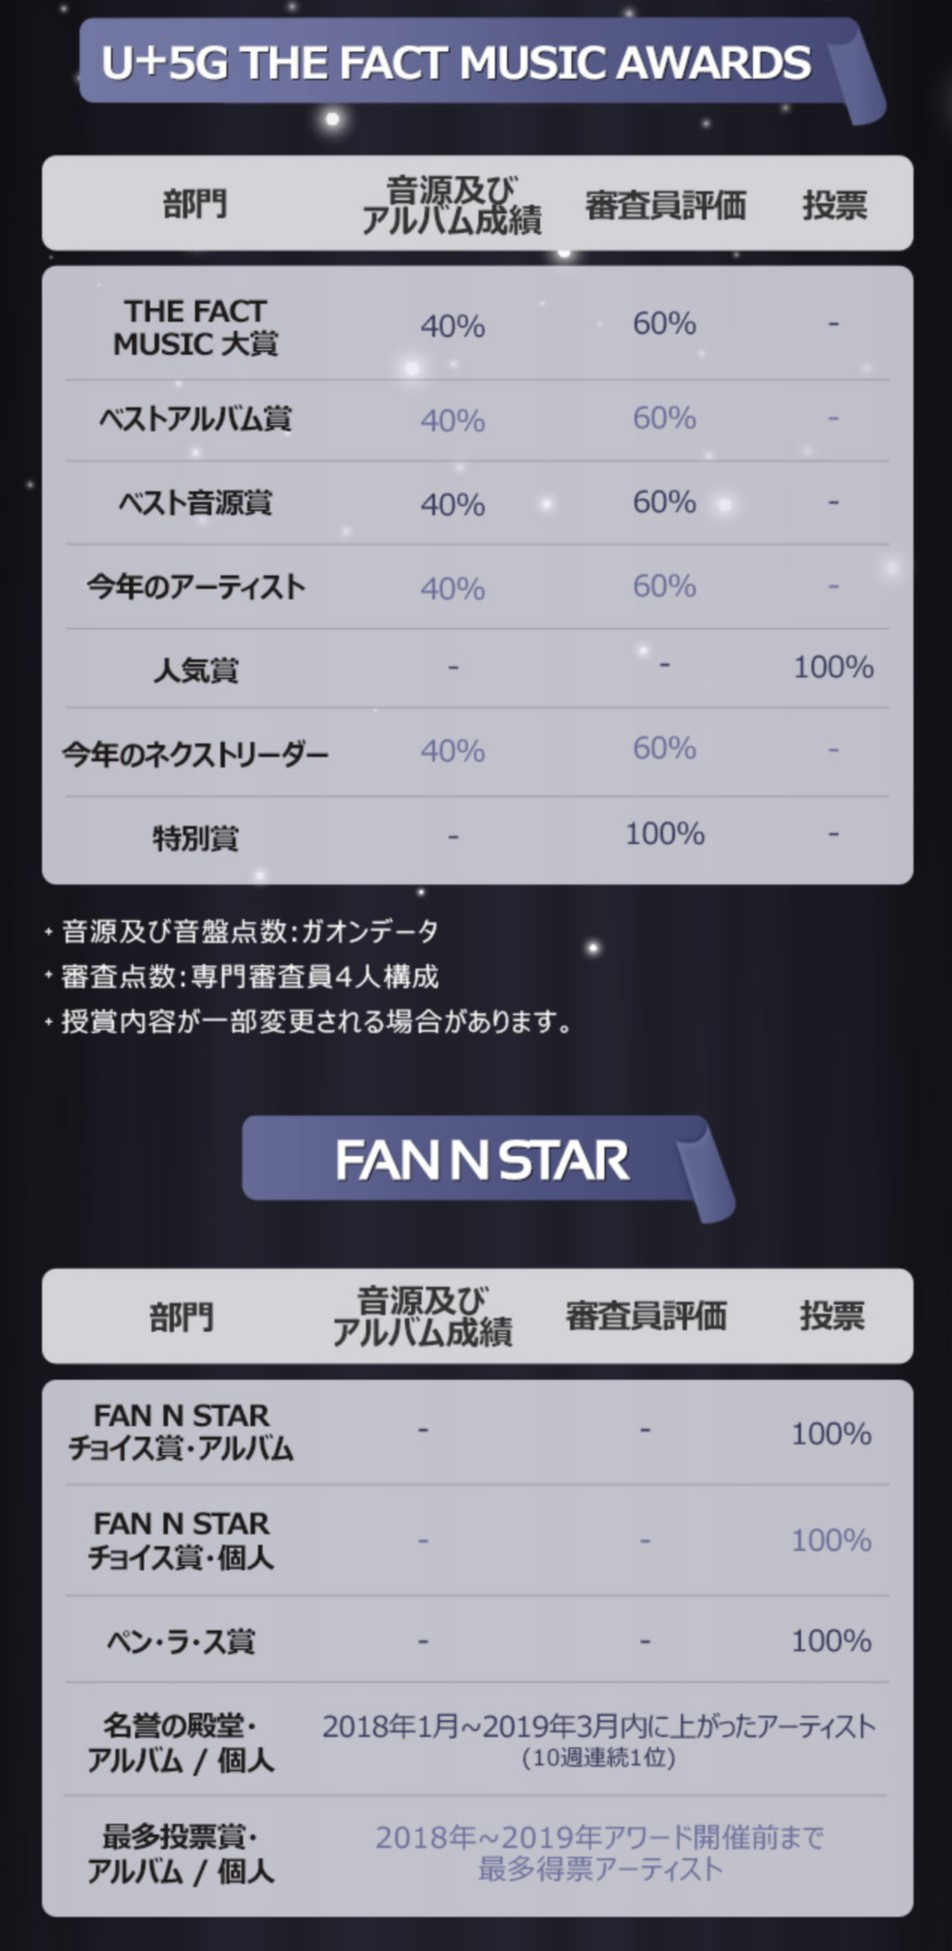 出典:http://jp.fannstar.tf.co.kr